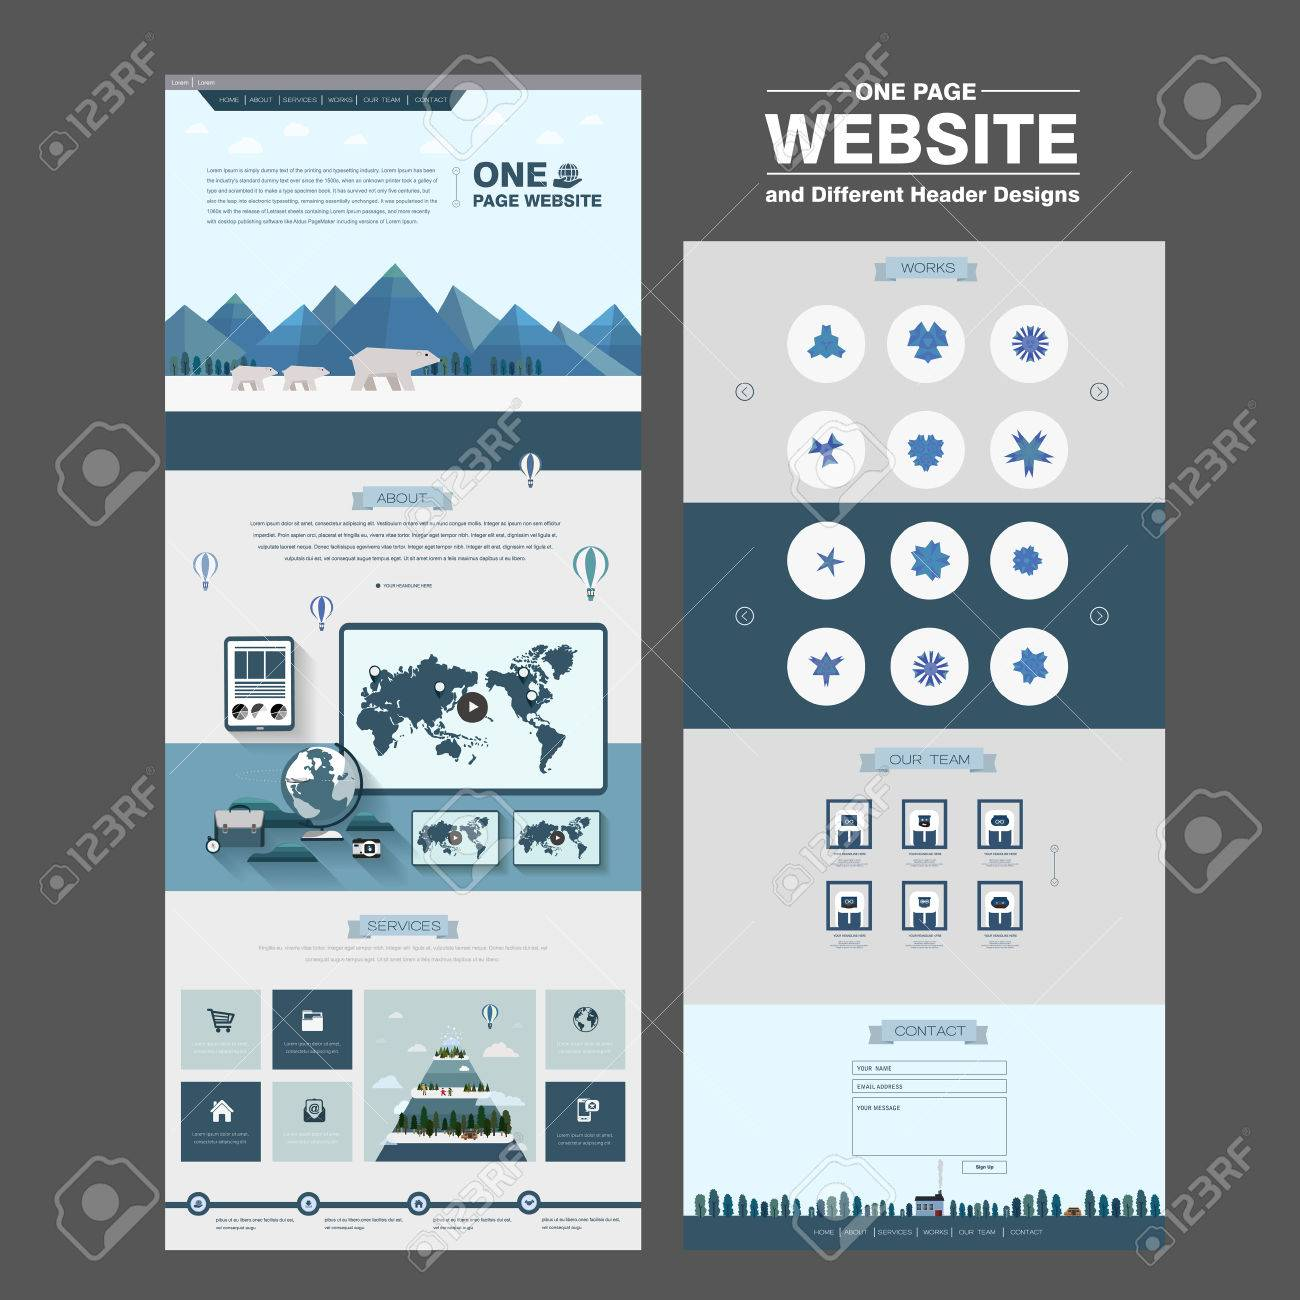 north pole scene one page website design template in flat style